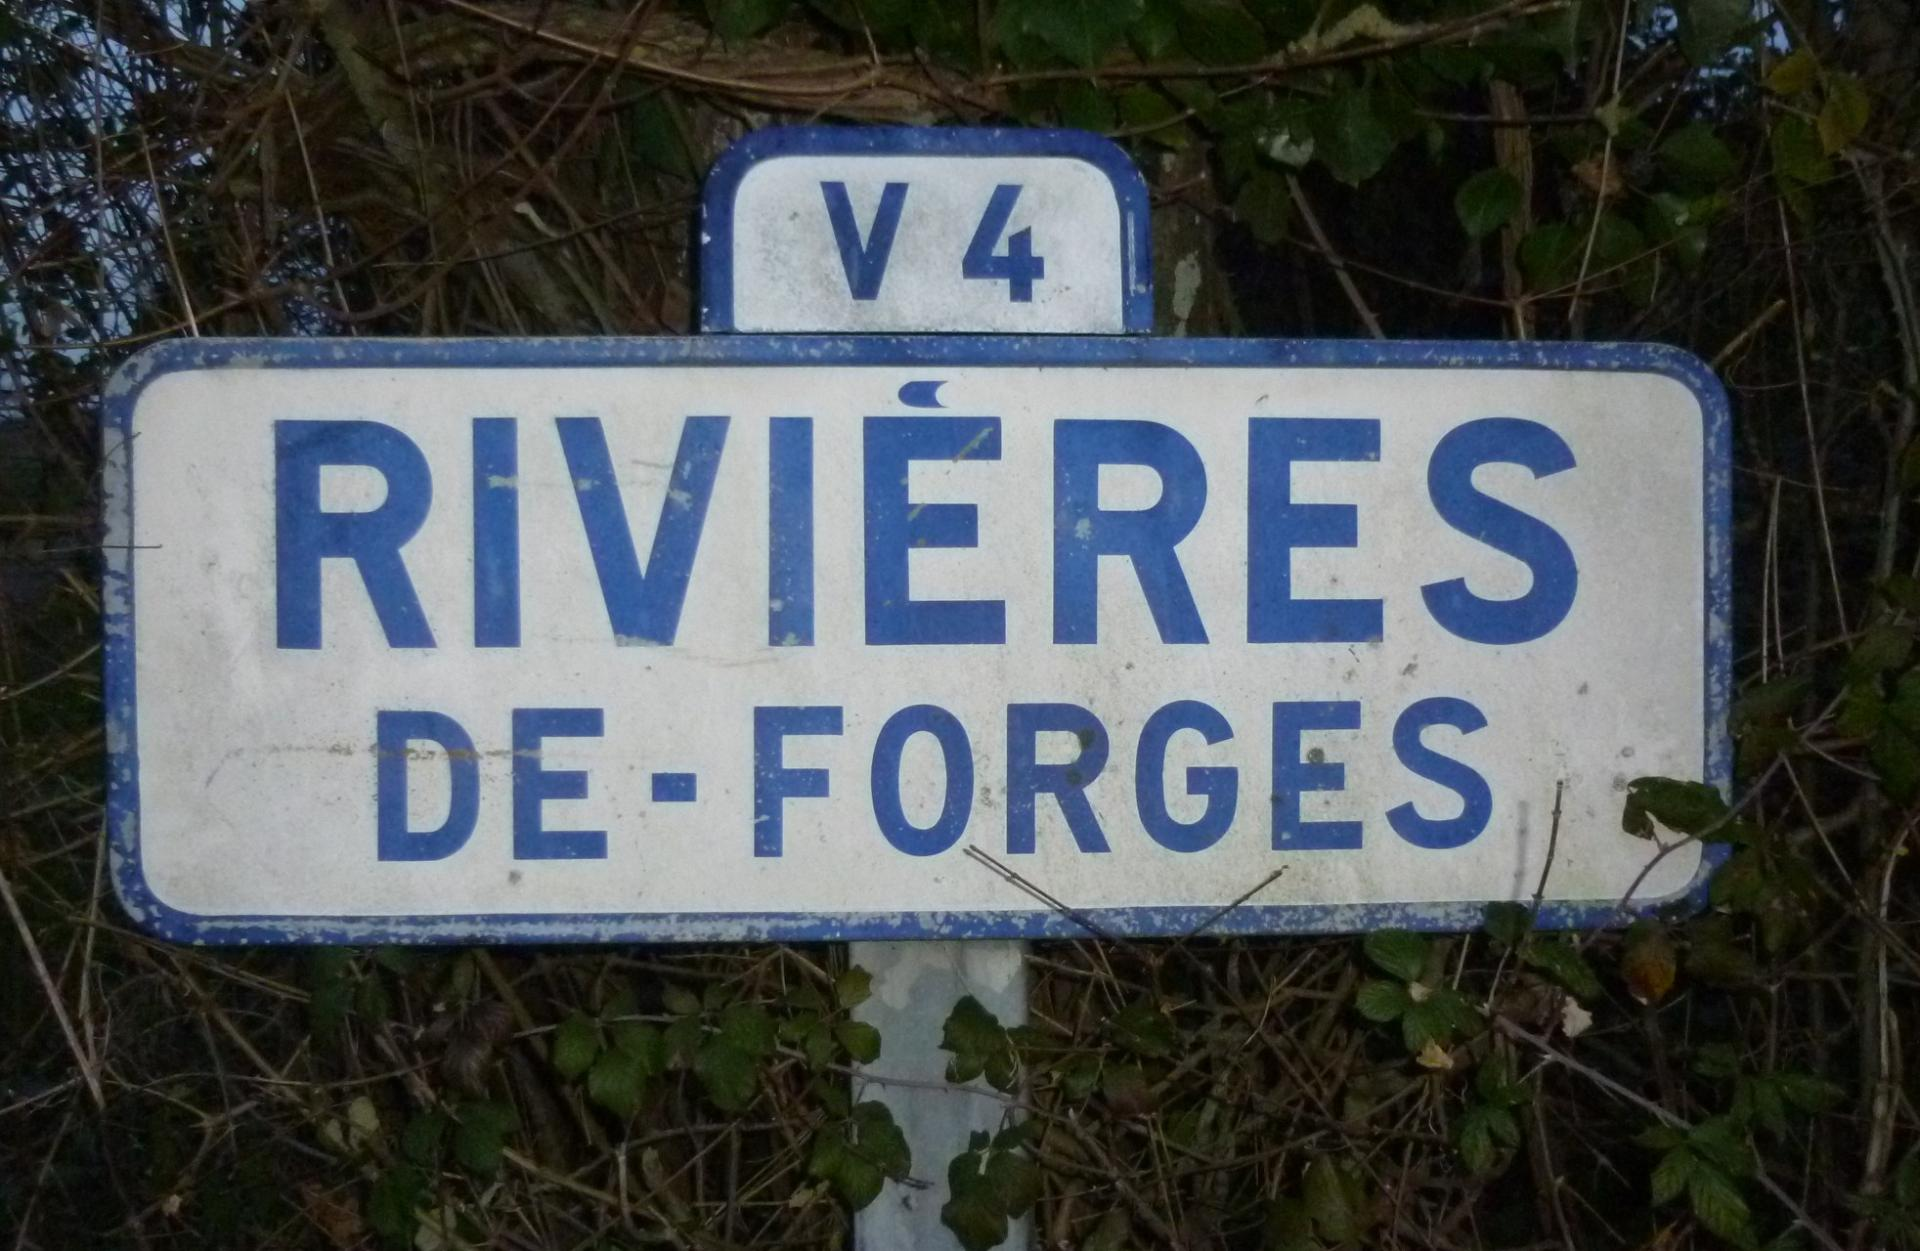 3 les rivieres forges 1 p1020604